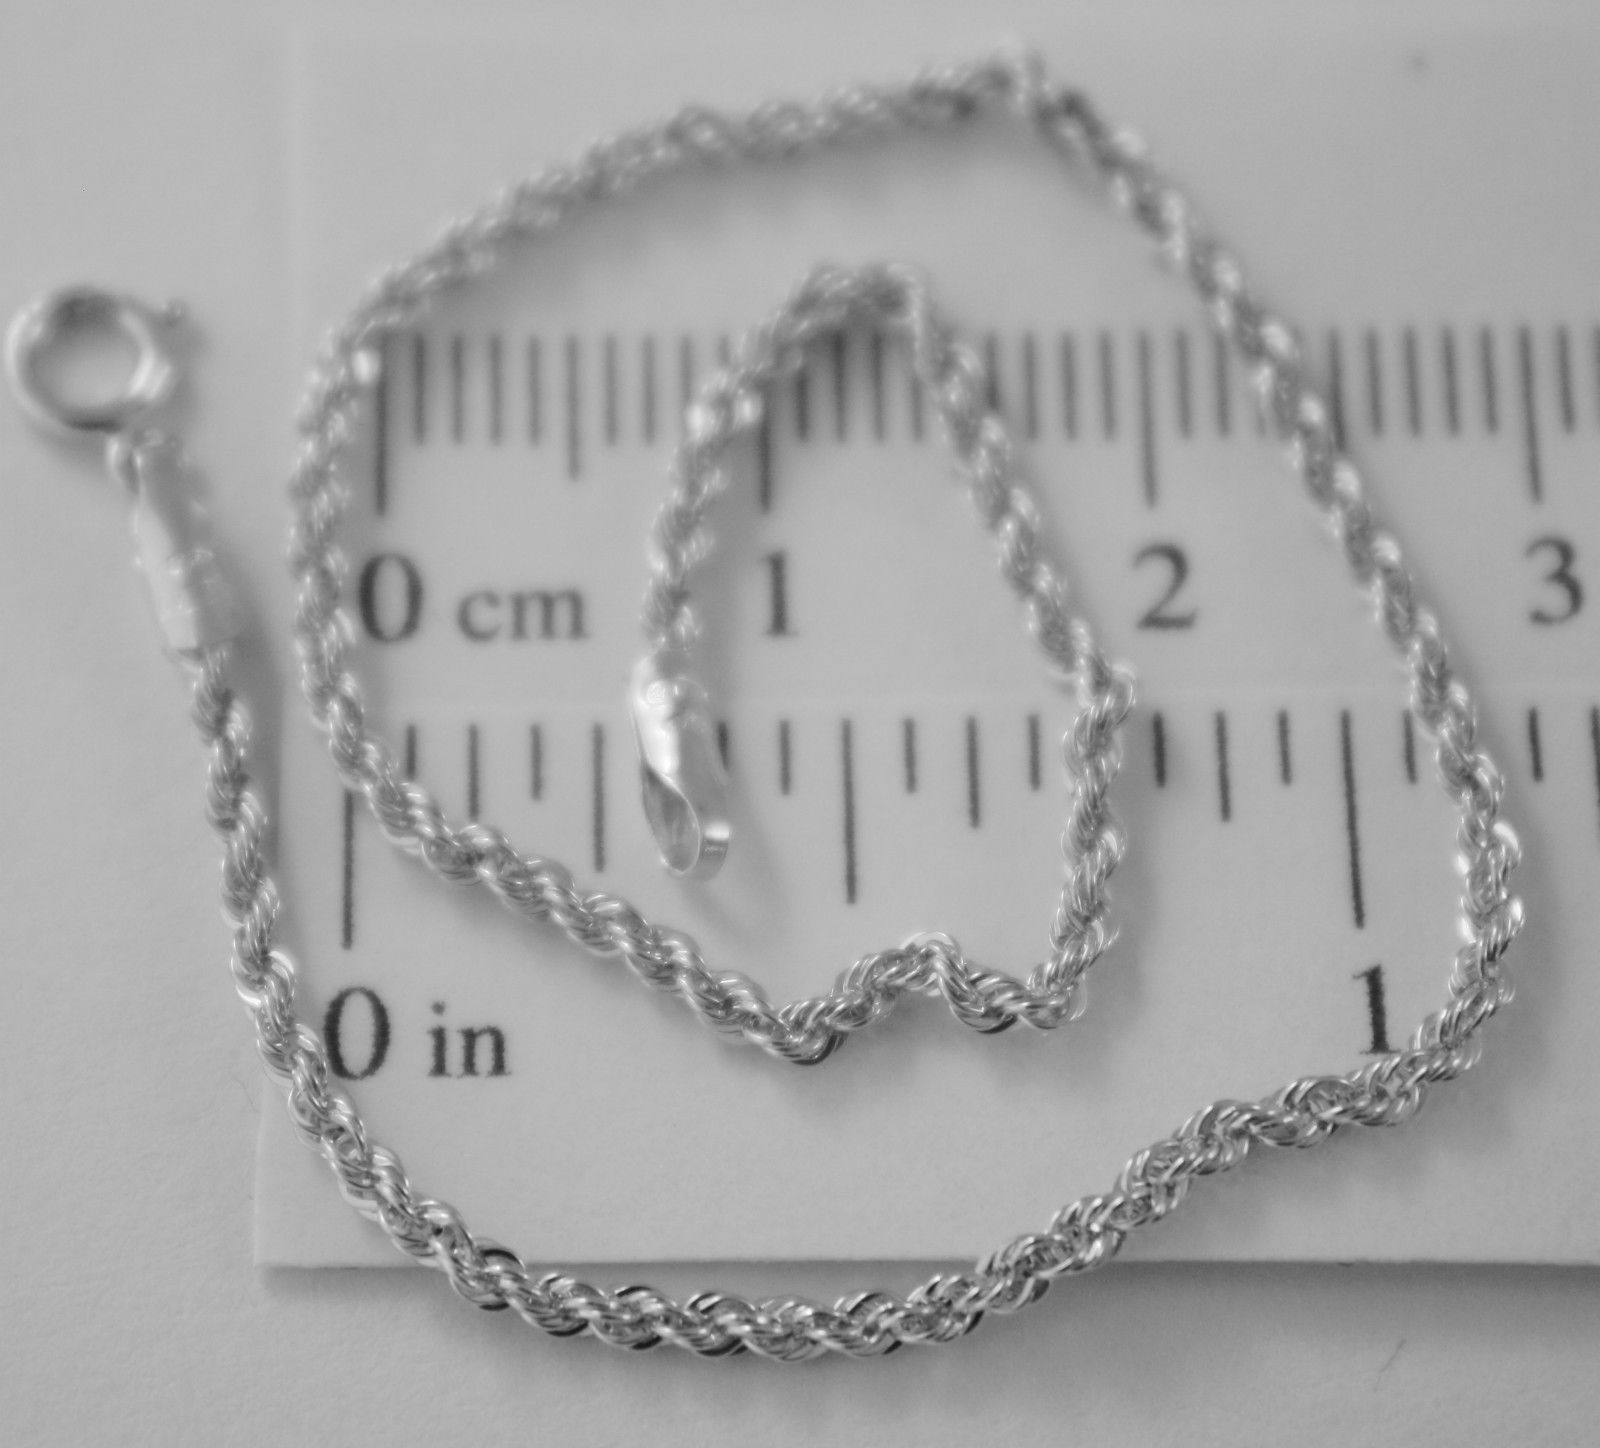 18K WHITE GOLD BRACELET, BRAID ROPE 7.30 INCH LONG, MADE IN ITALY